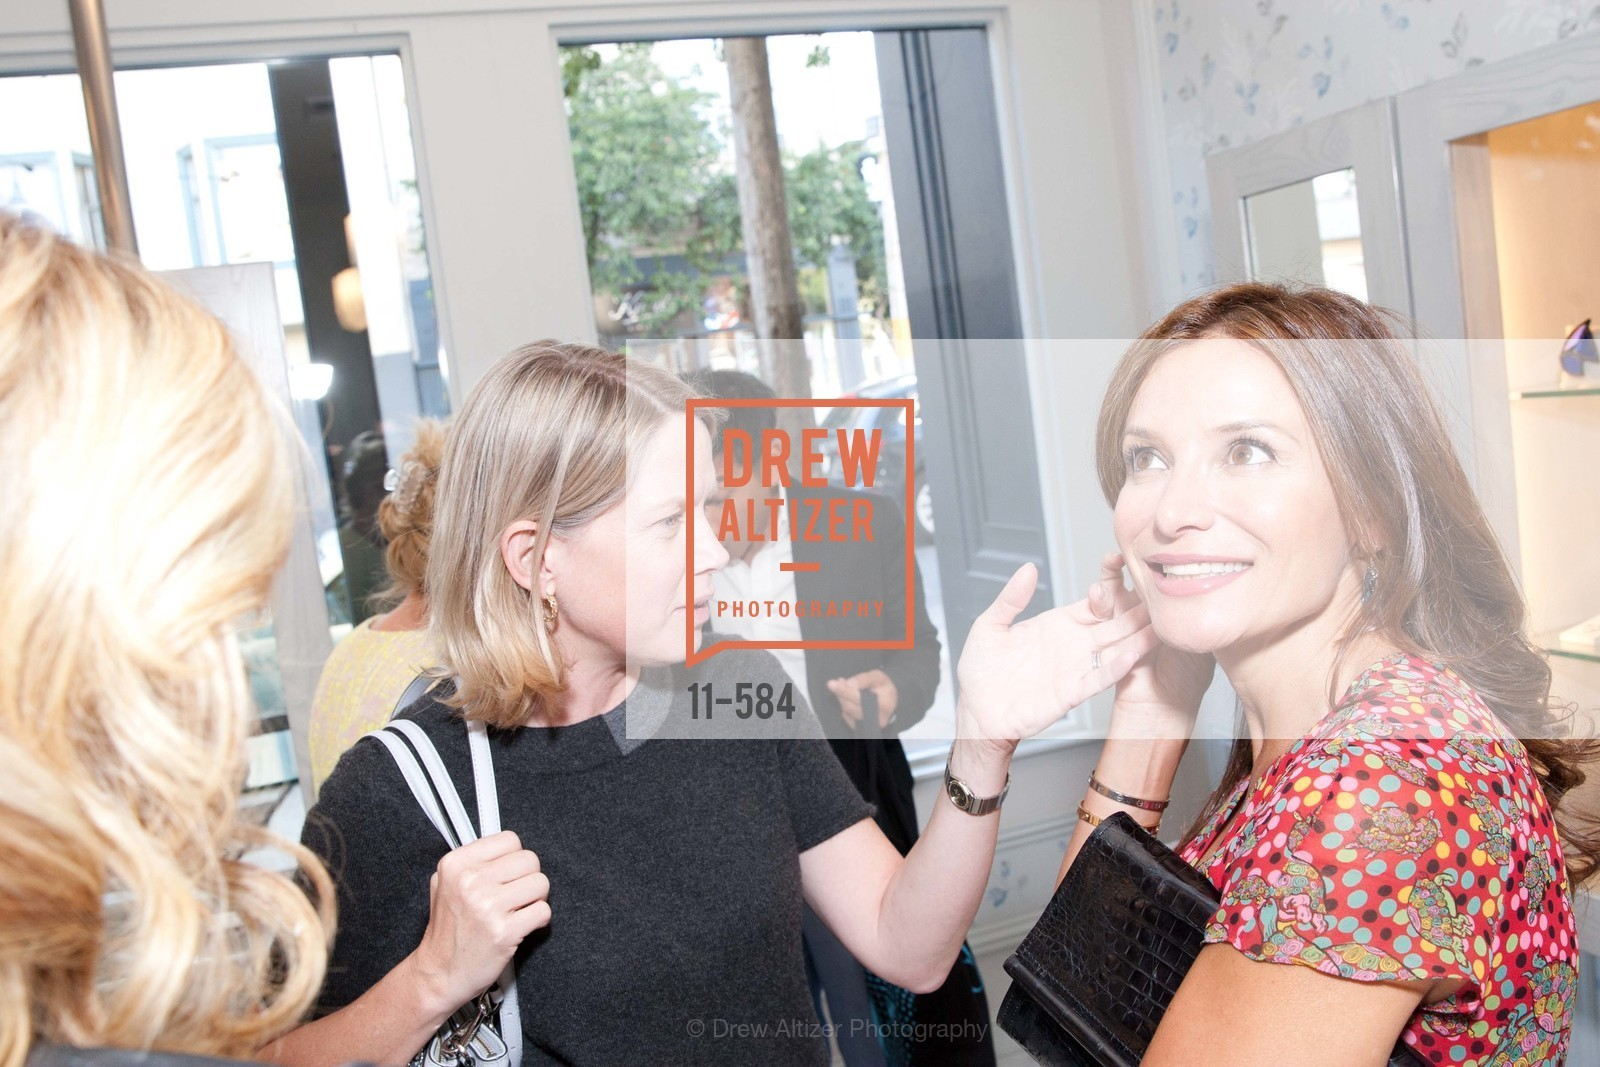 Ariane Trimuschat, Claudia Ross, 141001-AlexisBittar-correct, US, October 1st, 2014,Drew Altizer, Drew Altizer Photography, full-service agency, private events, San Francisco photographer, photographer california